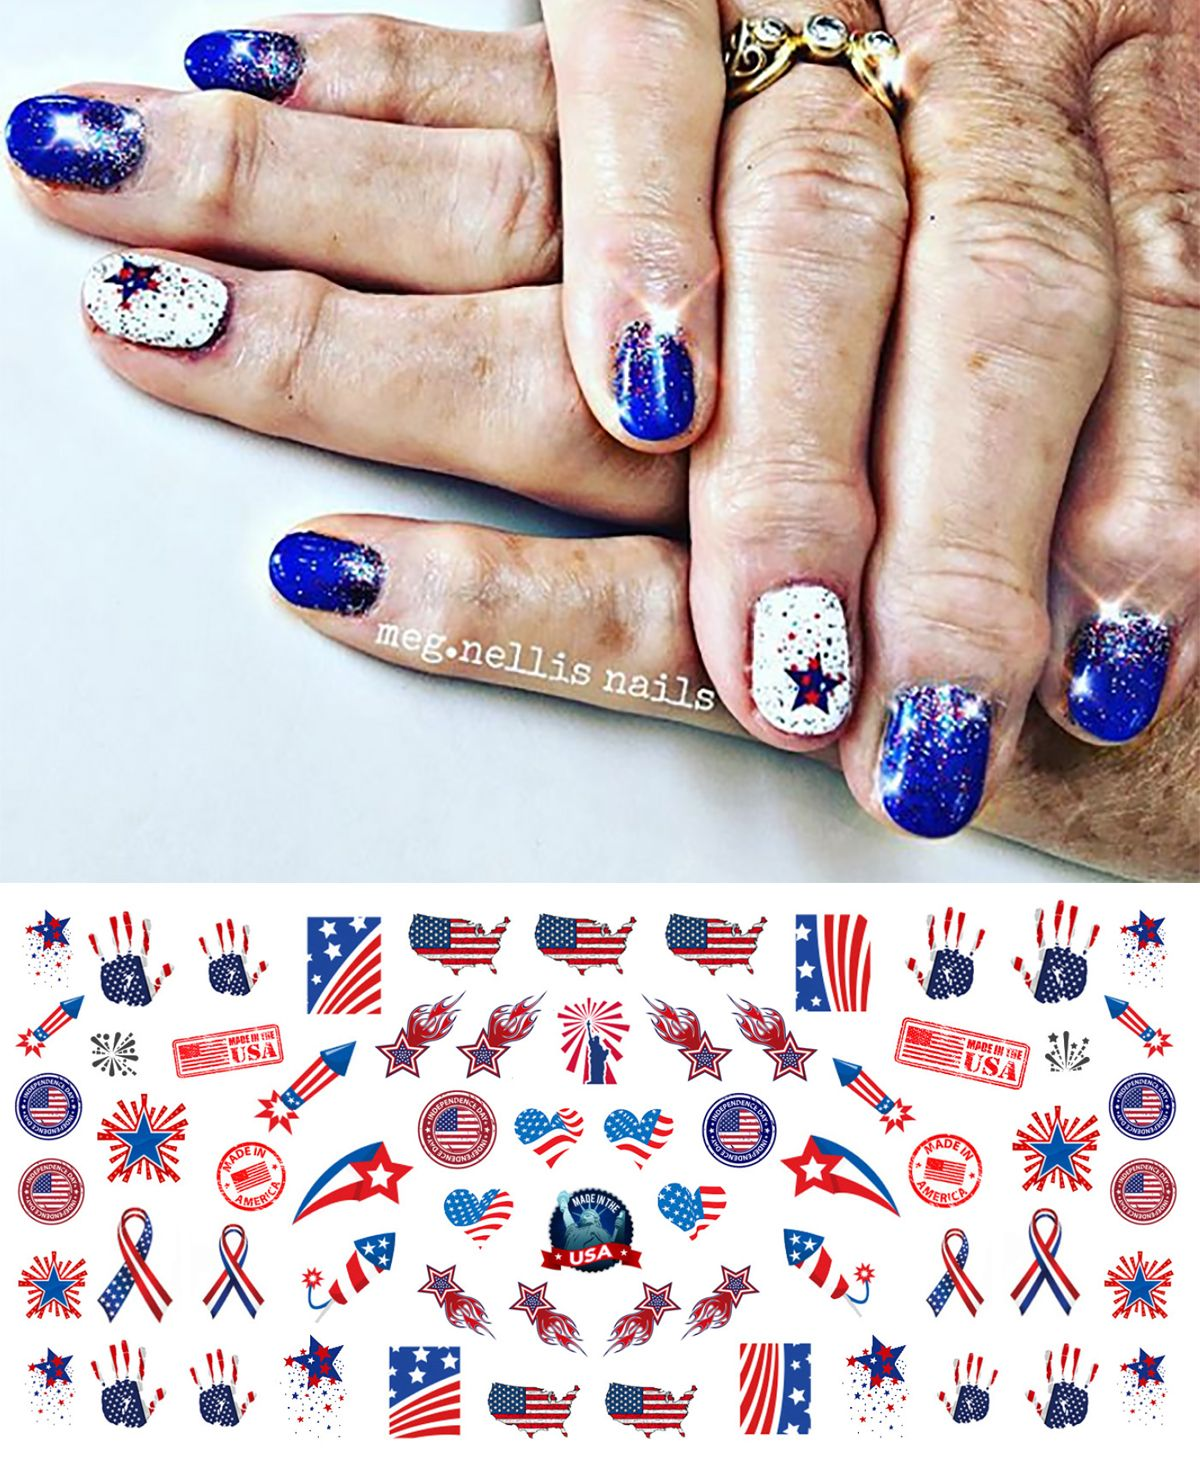 Www Moonsugardecals Com Offers Over 100 Different Salon Quality Nail Art Decal Sets For Any Occasion We Also Do Custom Orders 4 America Nails Nail Art Nails